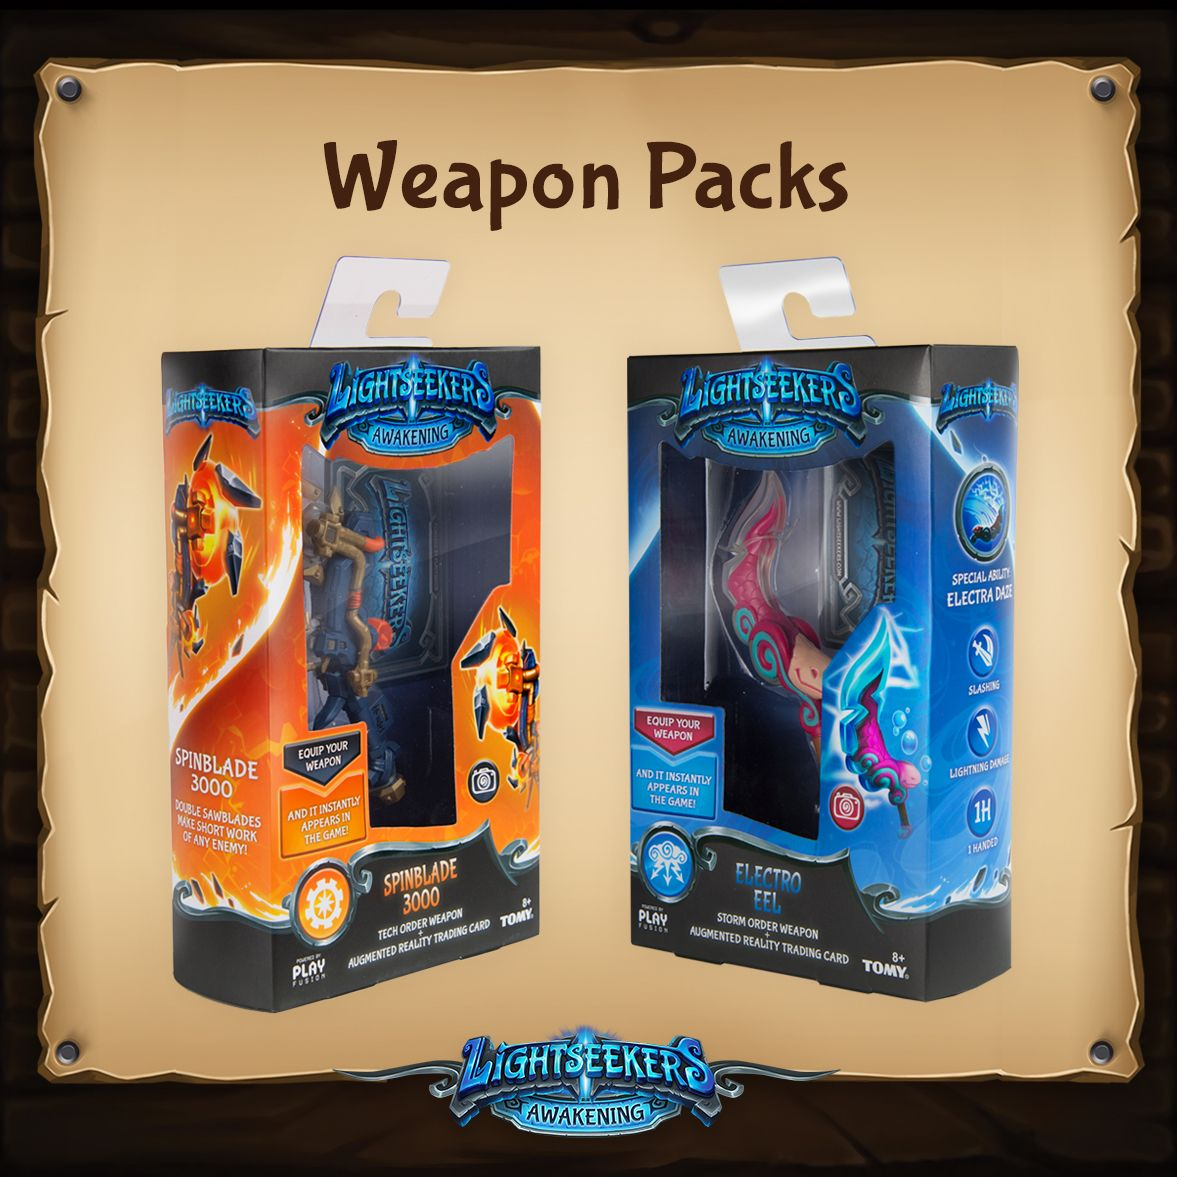 Lightseekers - Weapon Pack packaging